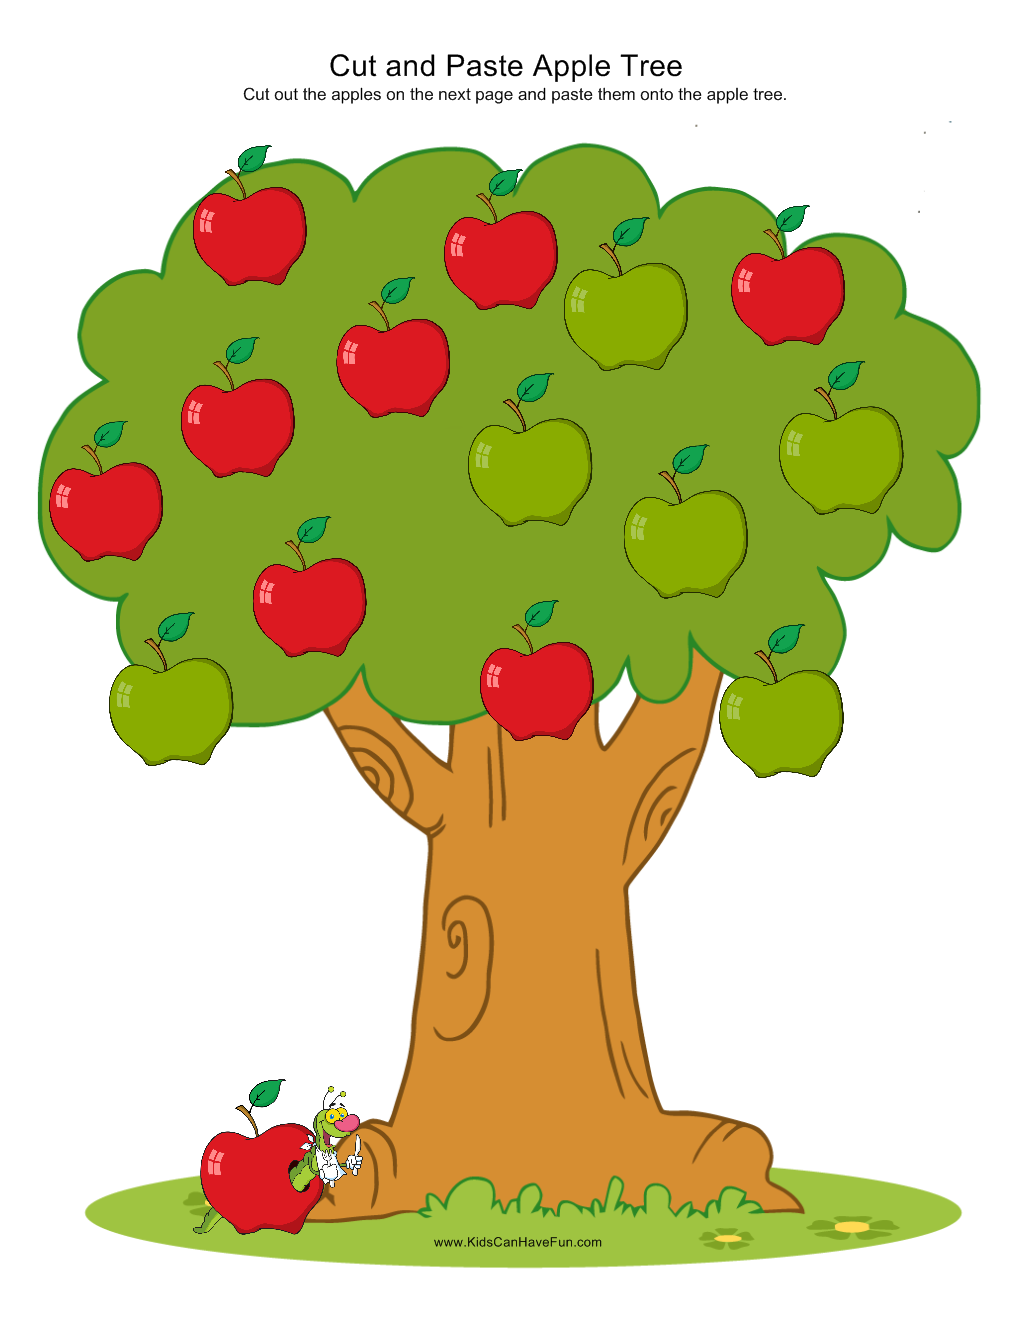 Cut and paste apples onto the apple tree. Visit our School Zone to ...